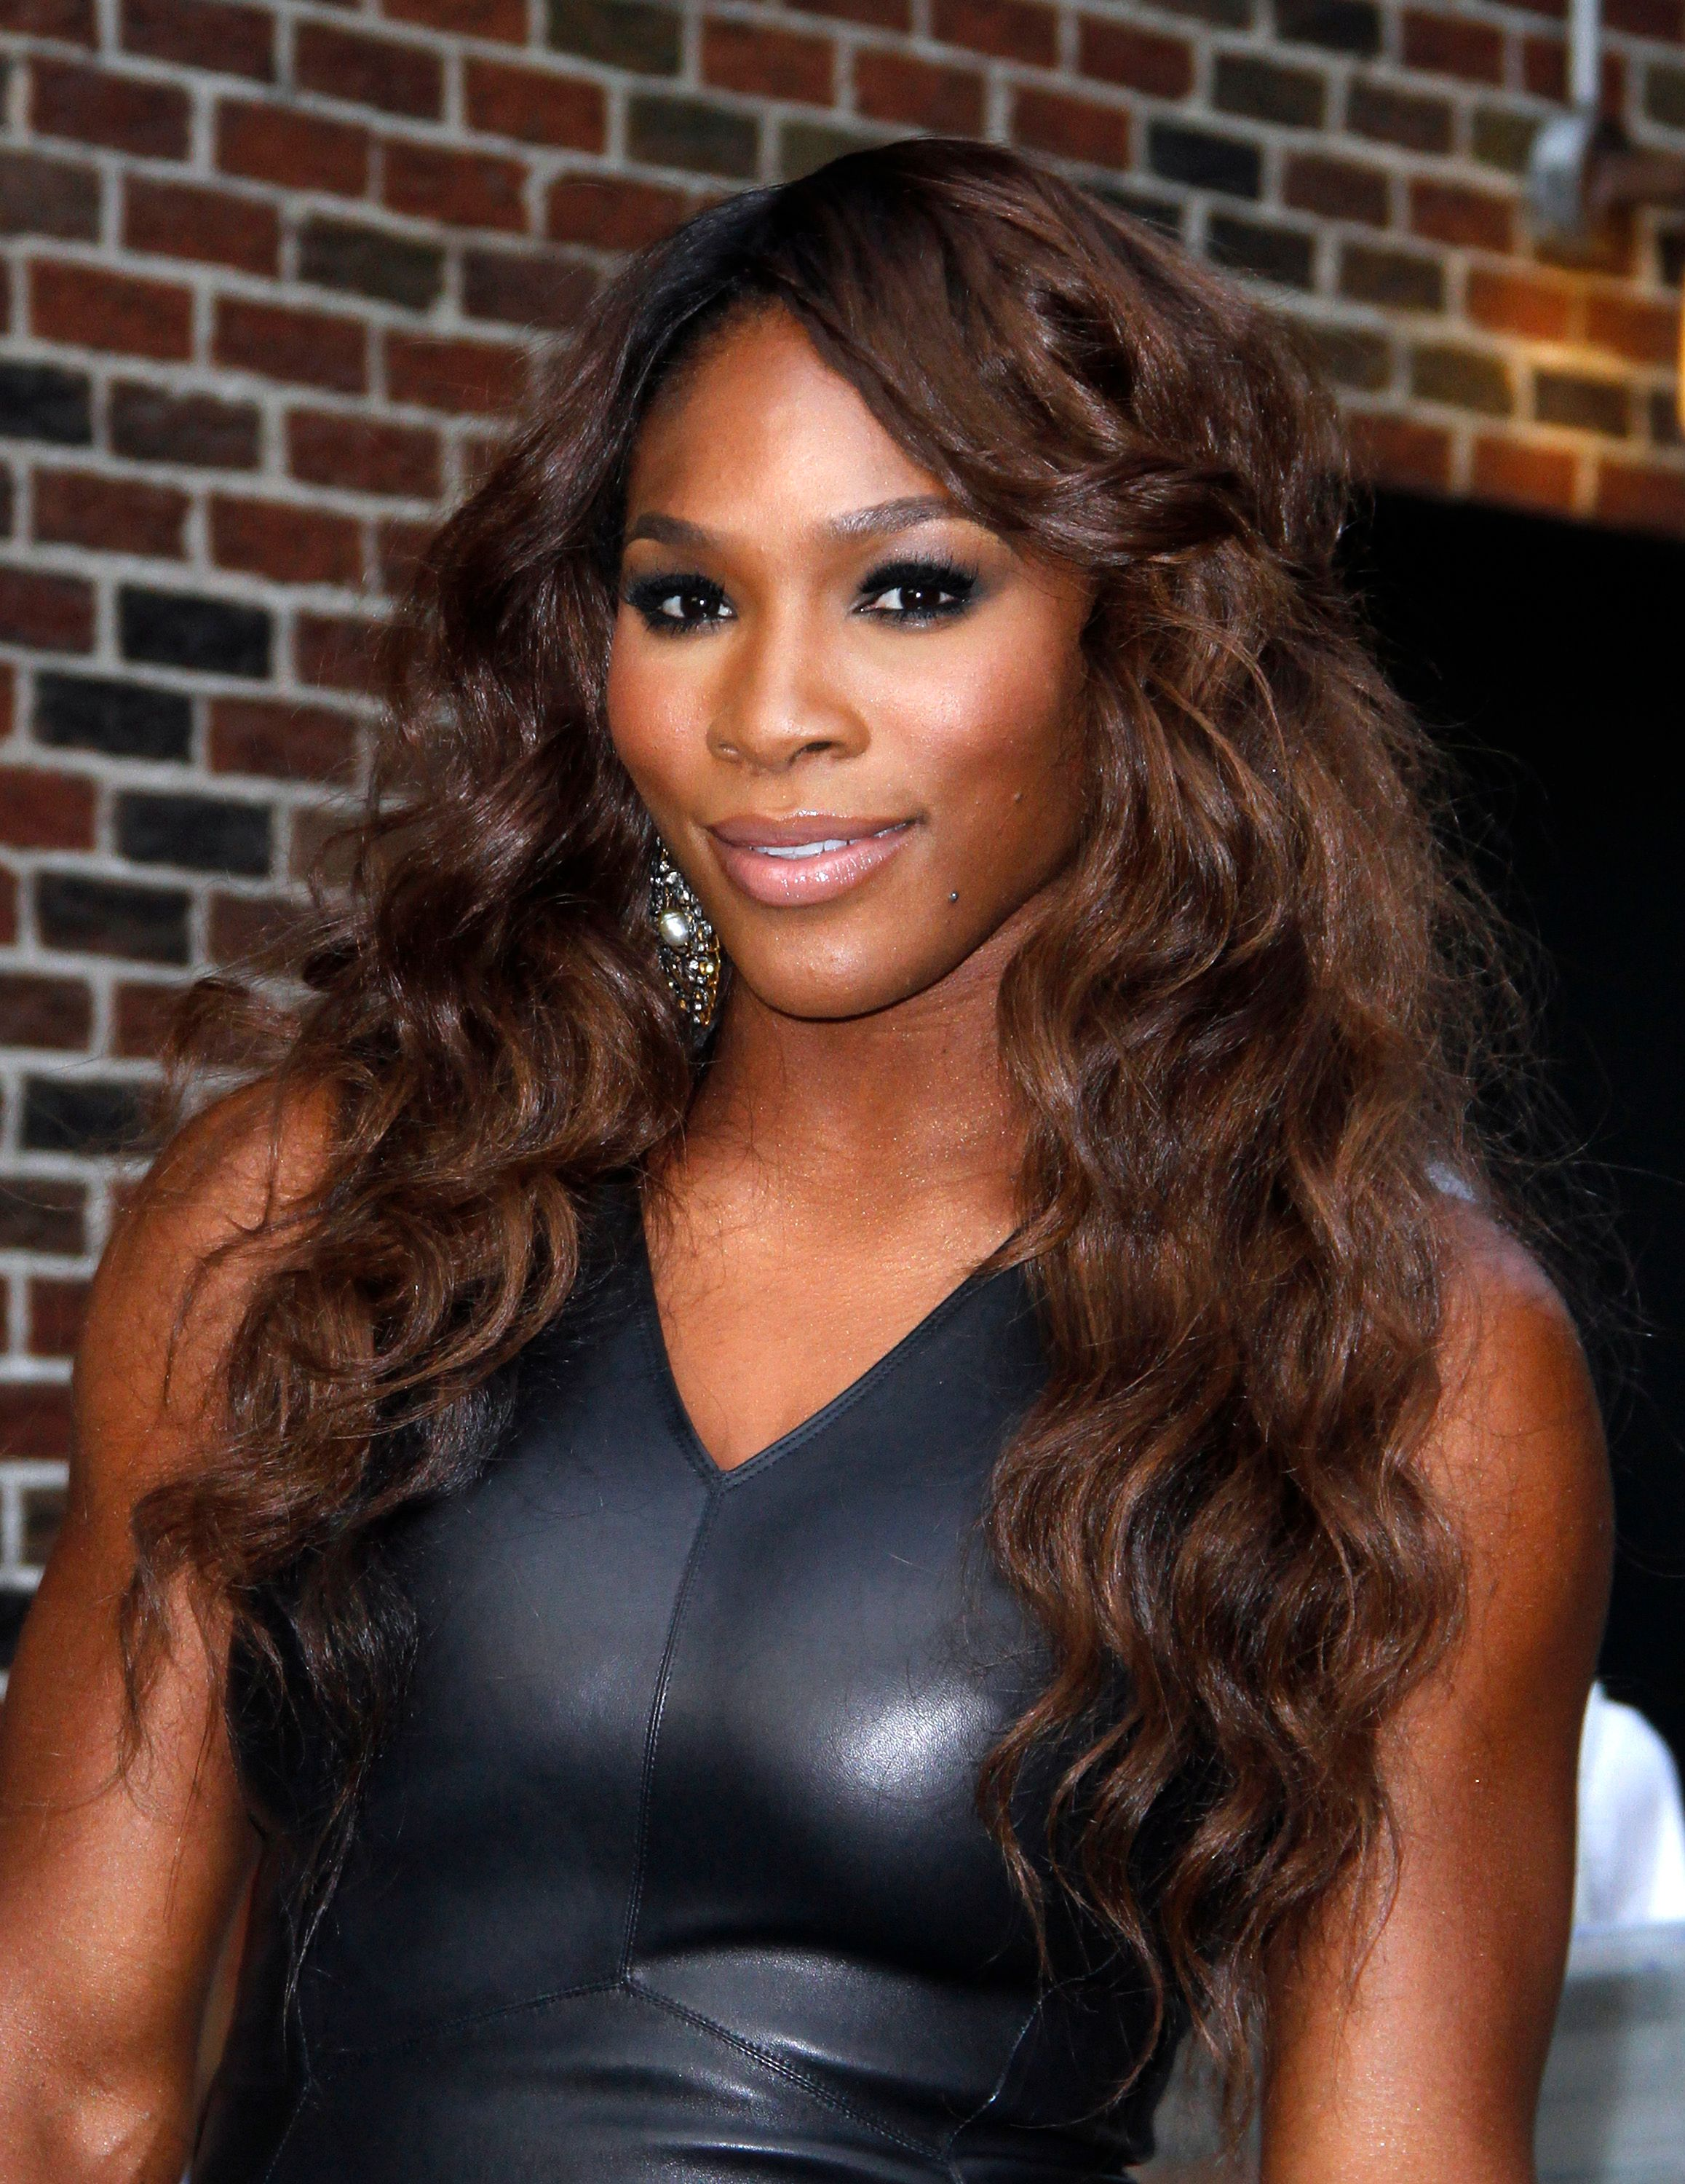 """Serena Williams during the """"Late Show with David Letterman"""" at the Ed Sullivan Theater on August 21, 2013 in New York City. 